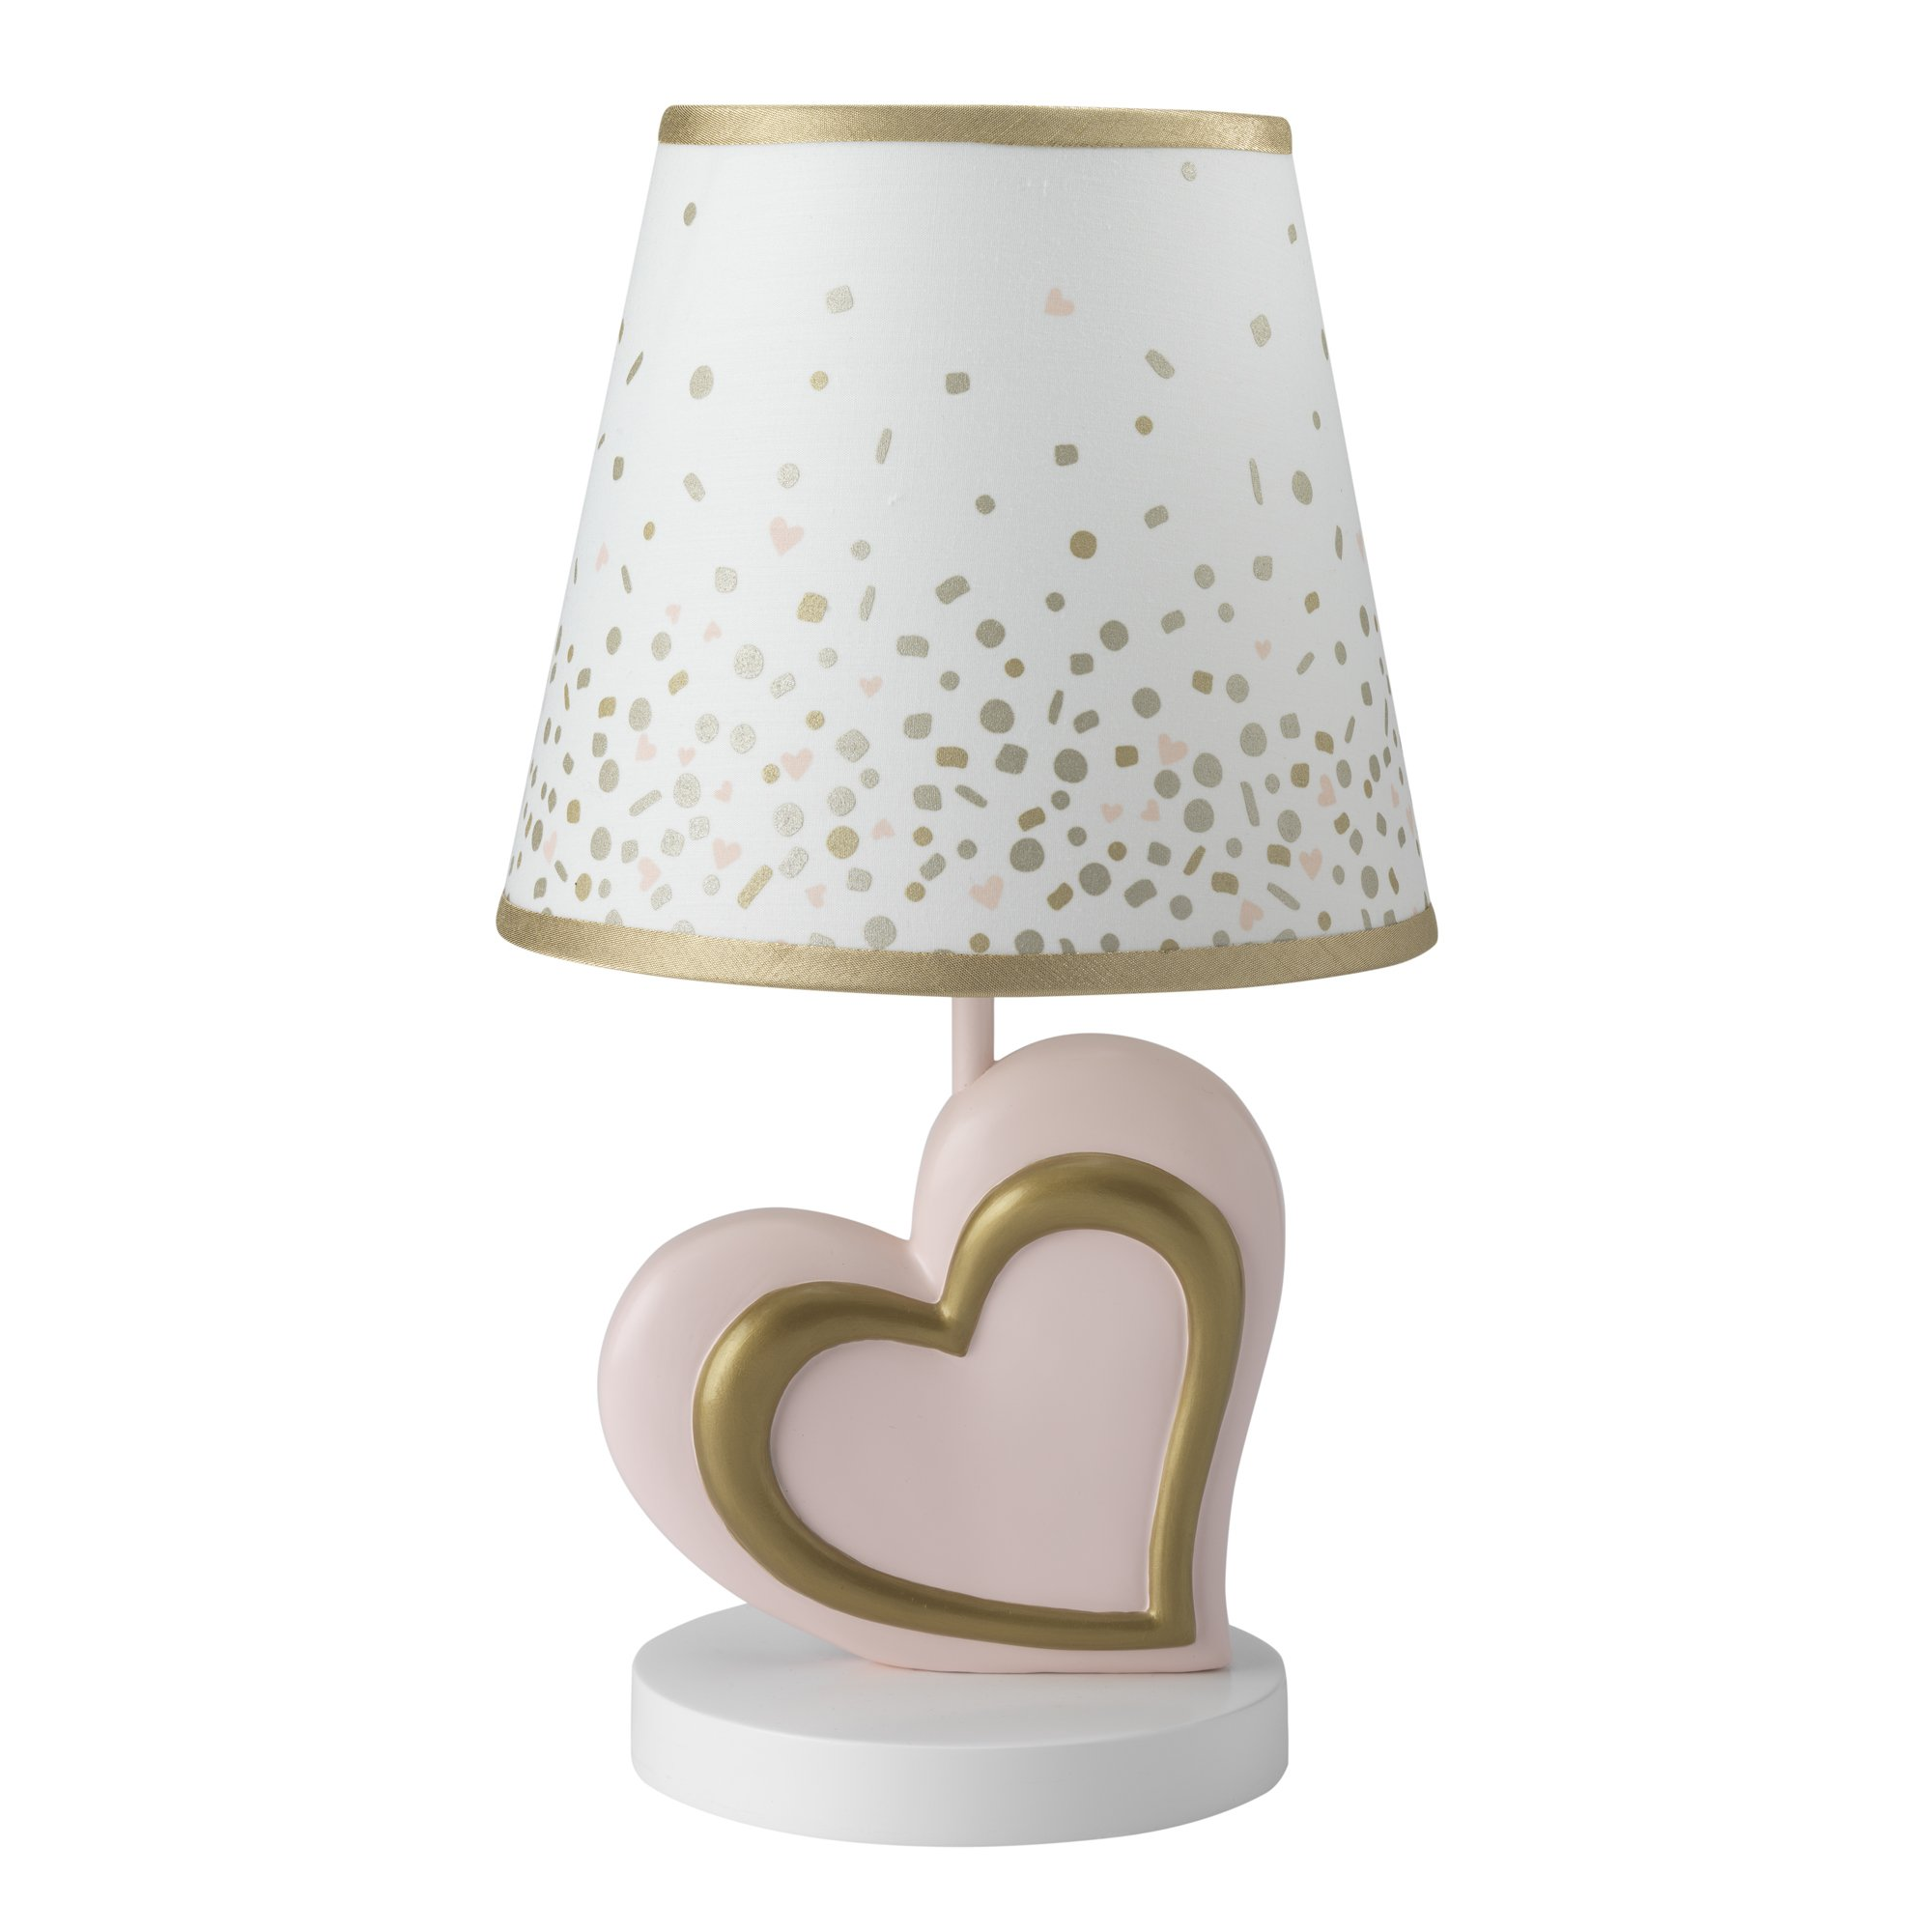 Lambs & Ivy Confetti Heart Lamp with Shade & Bulb, Pink/Gold by Lambs & Ivy